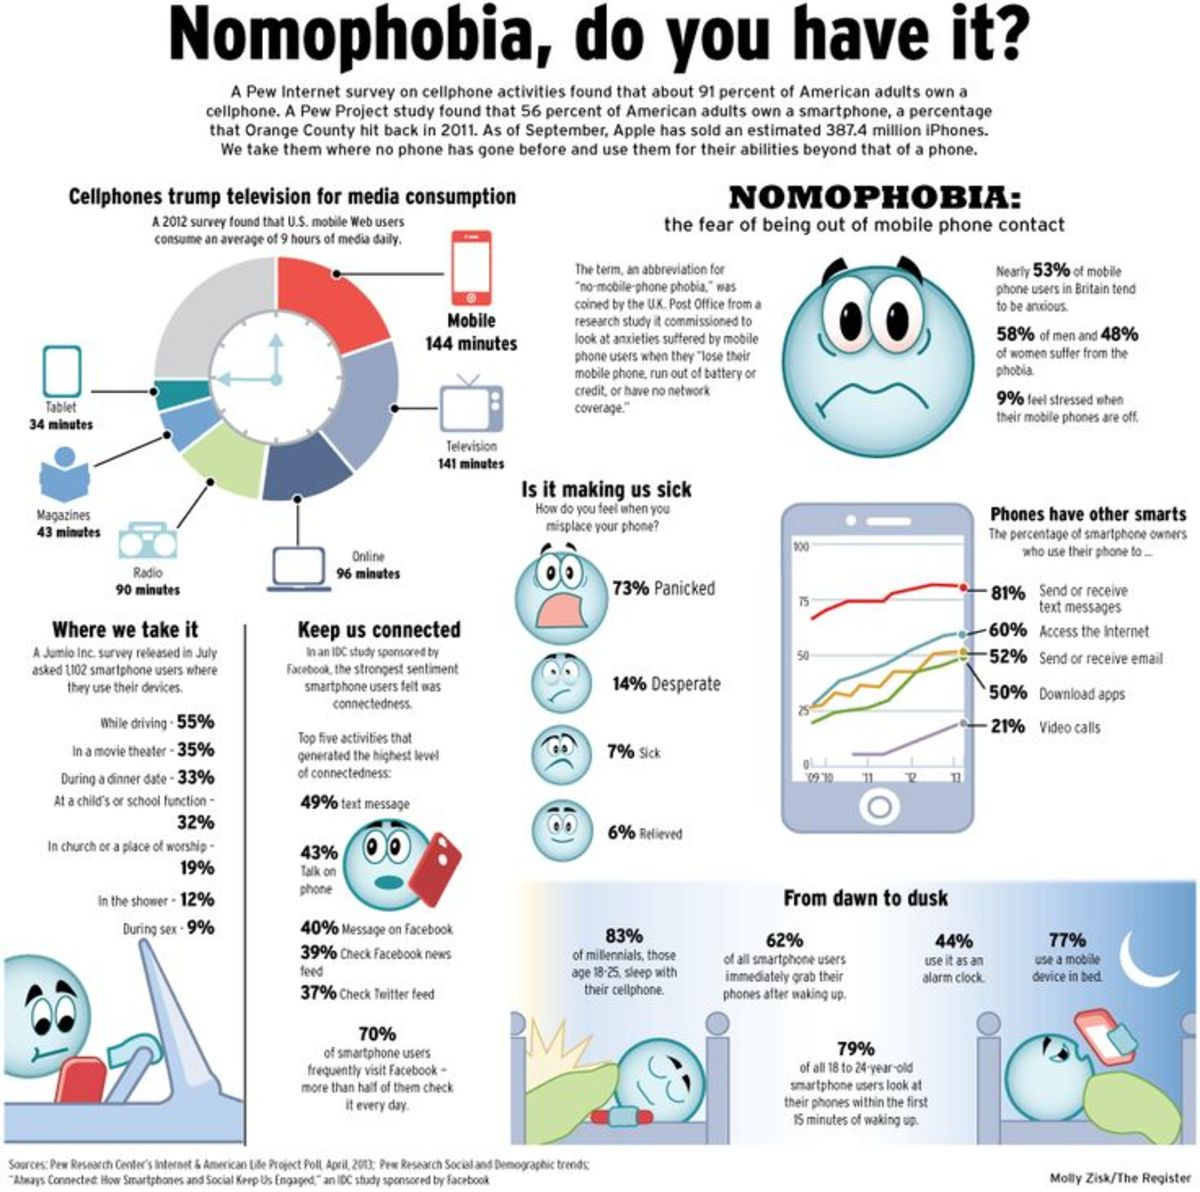 Do You Have Nomophobia?